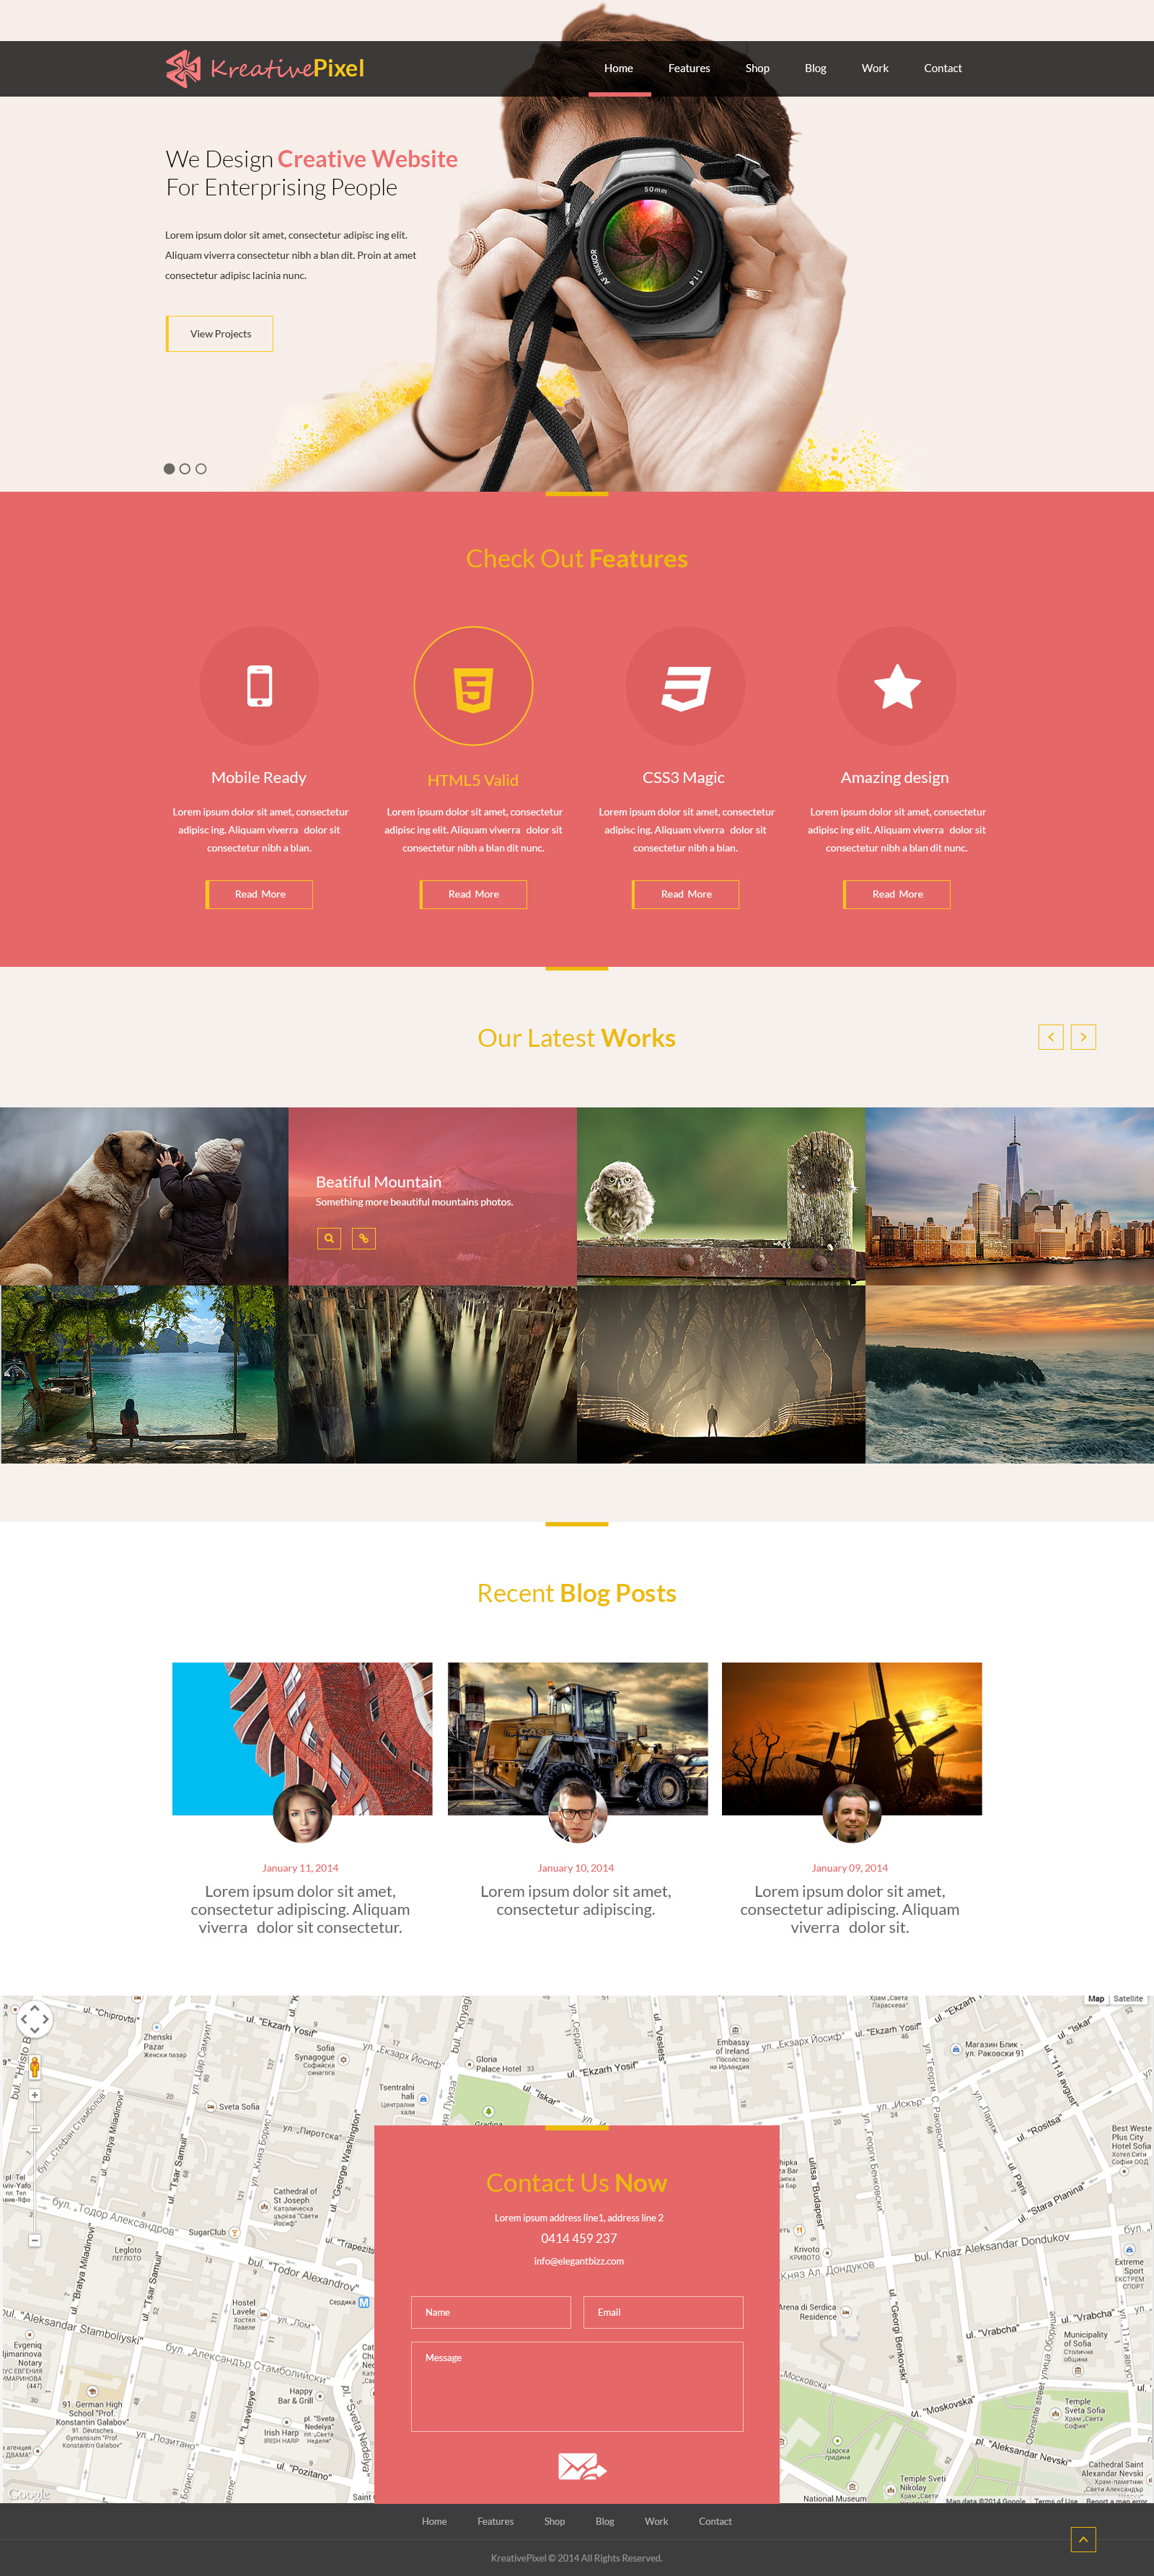 Creative website design template psd download psd for Website layout design software free download